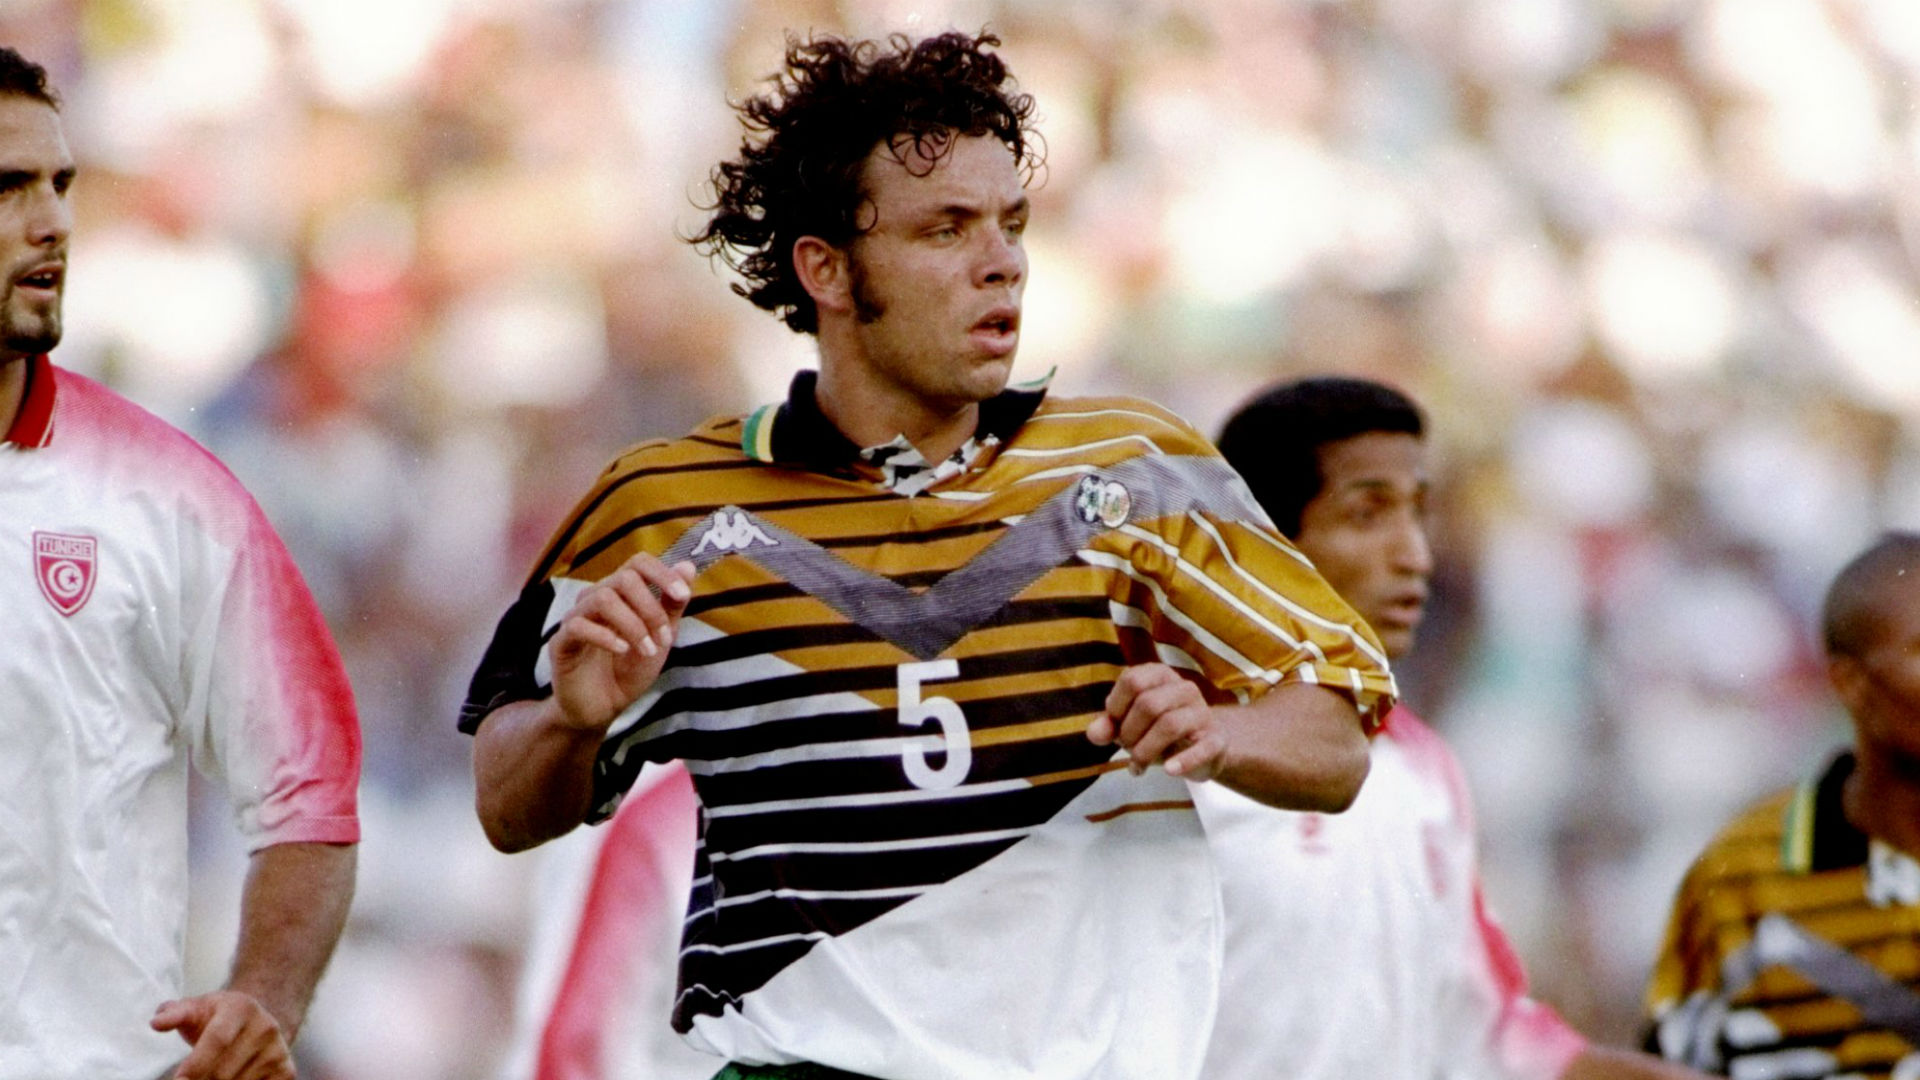 Orlando Pirates players must wear the jersey with pride - Mark Fish